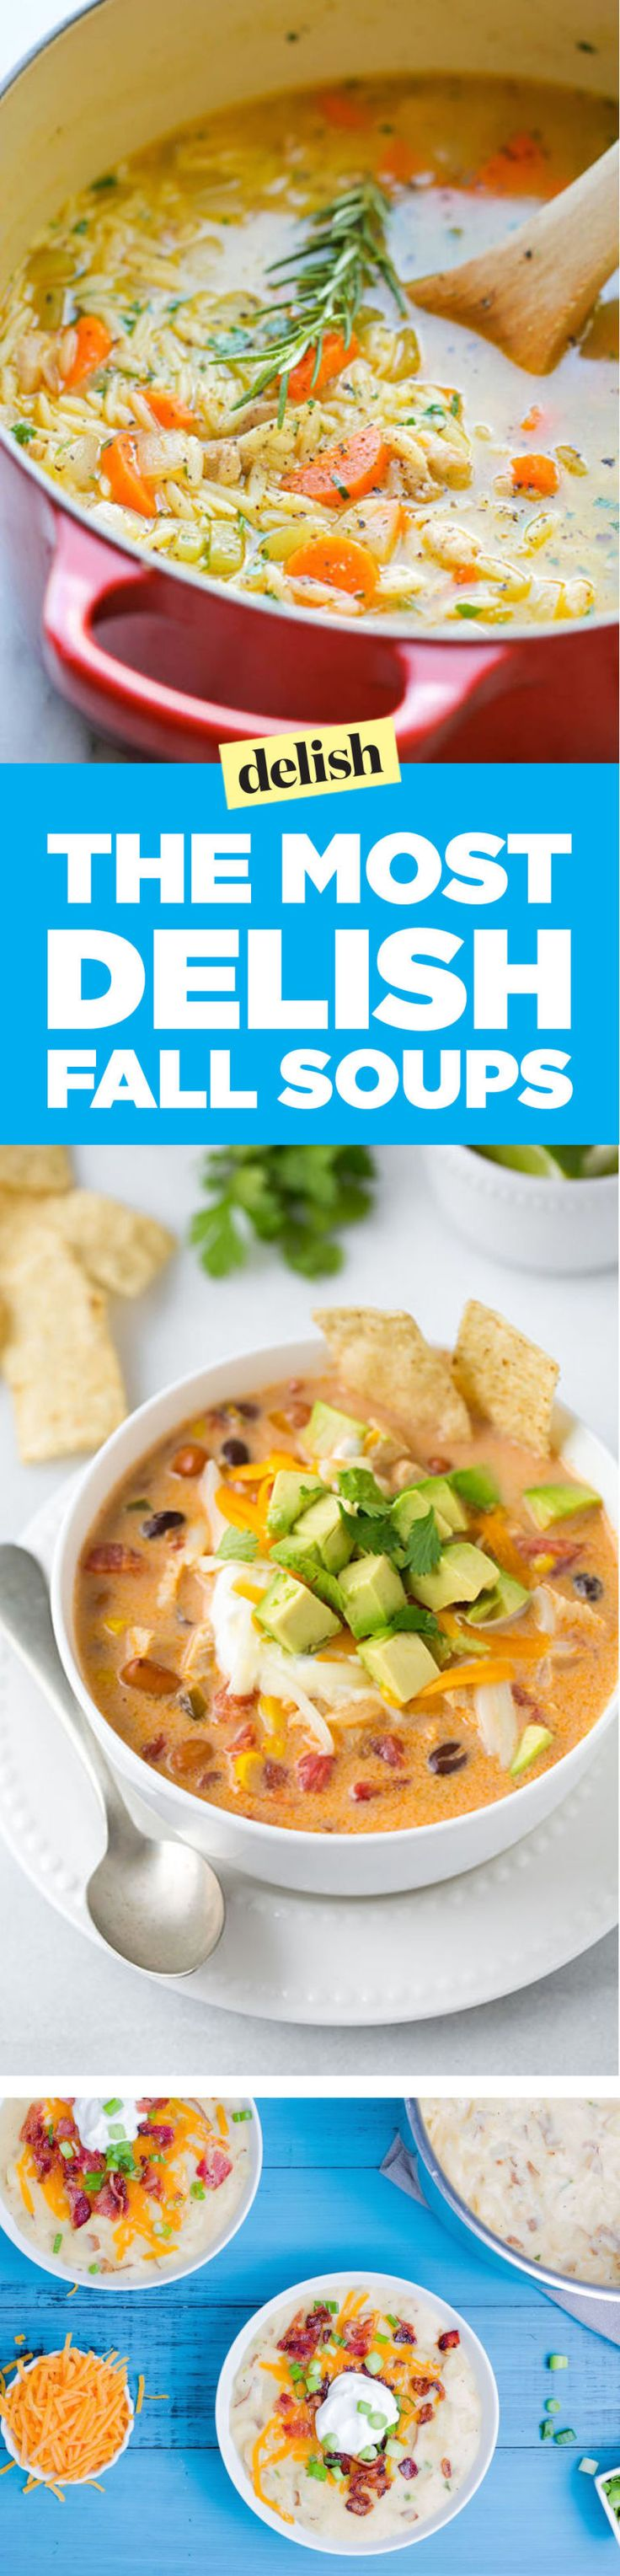 The 58 Most Delish Fall Soups